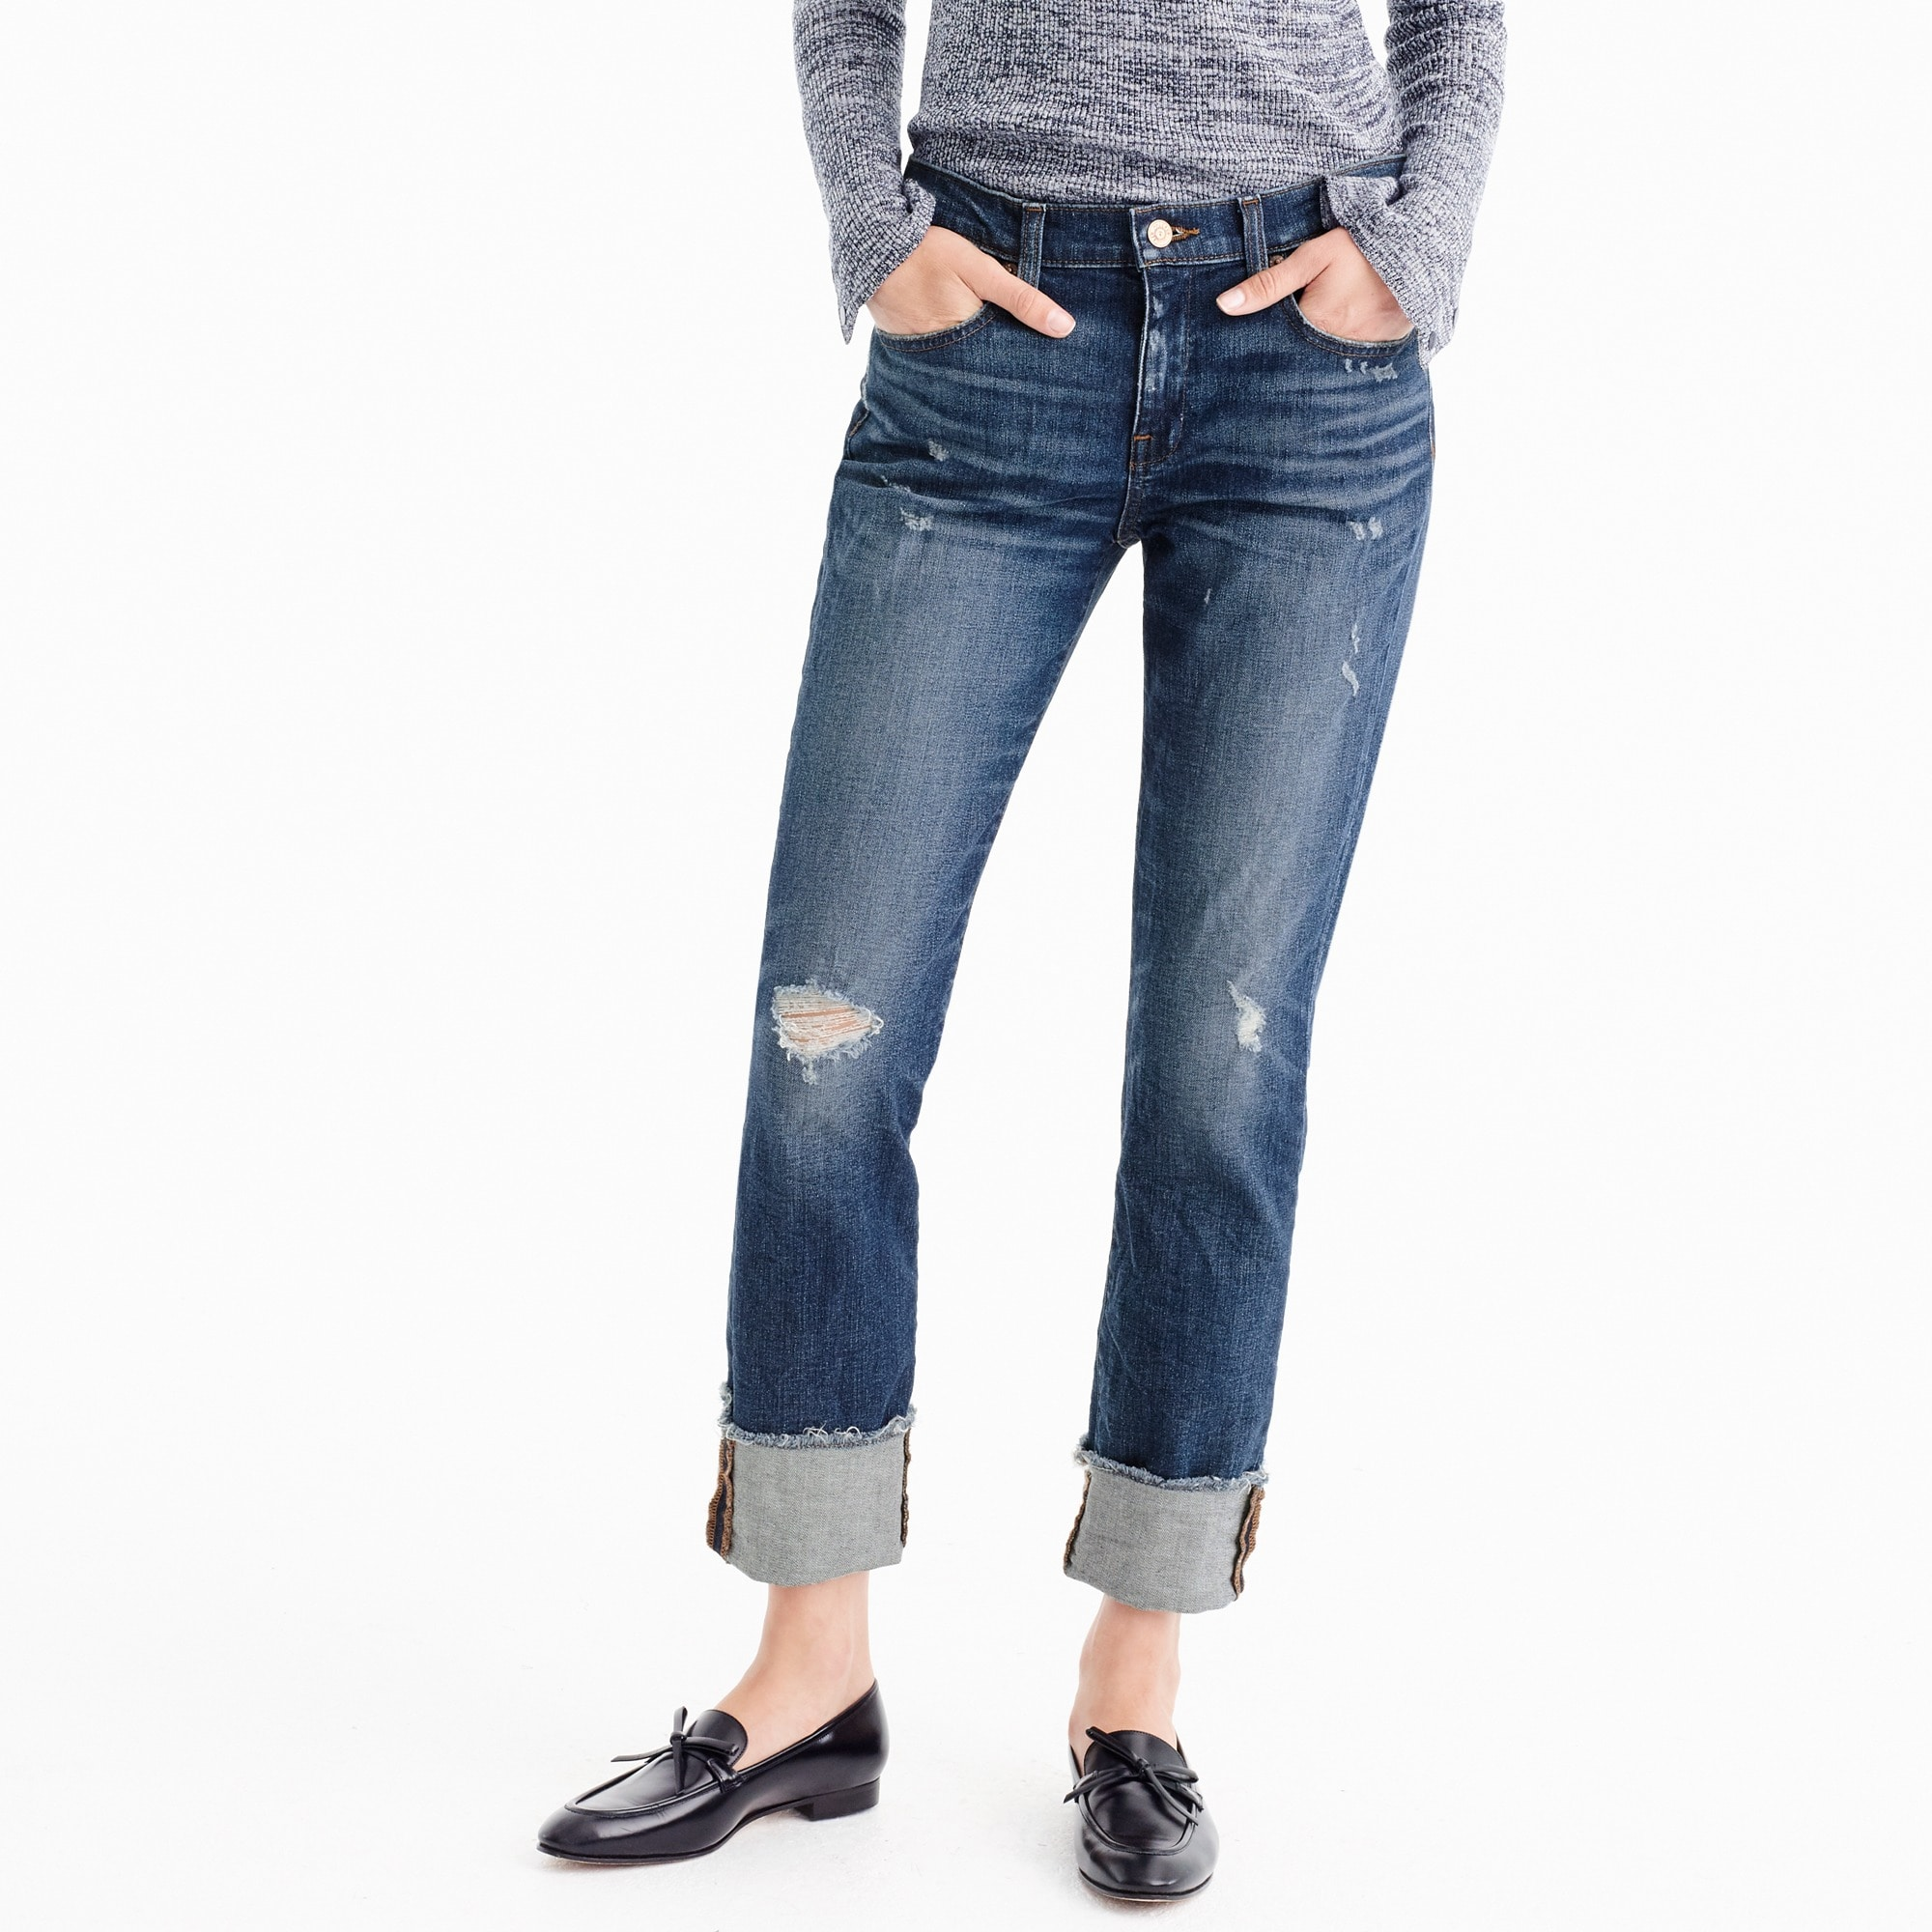 Petite slim boyfriend jean in Silverwood wash